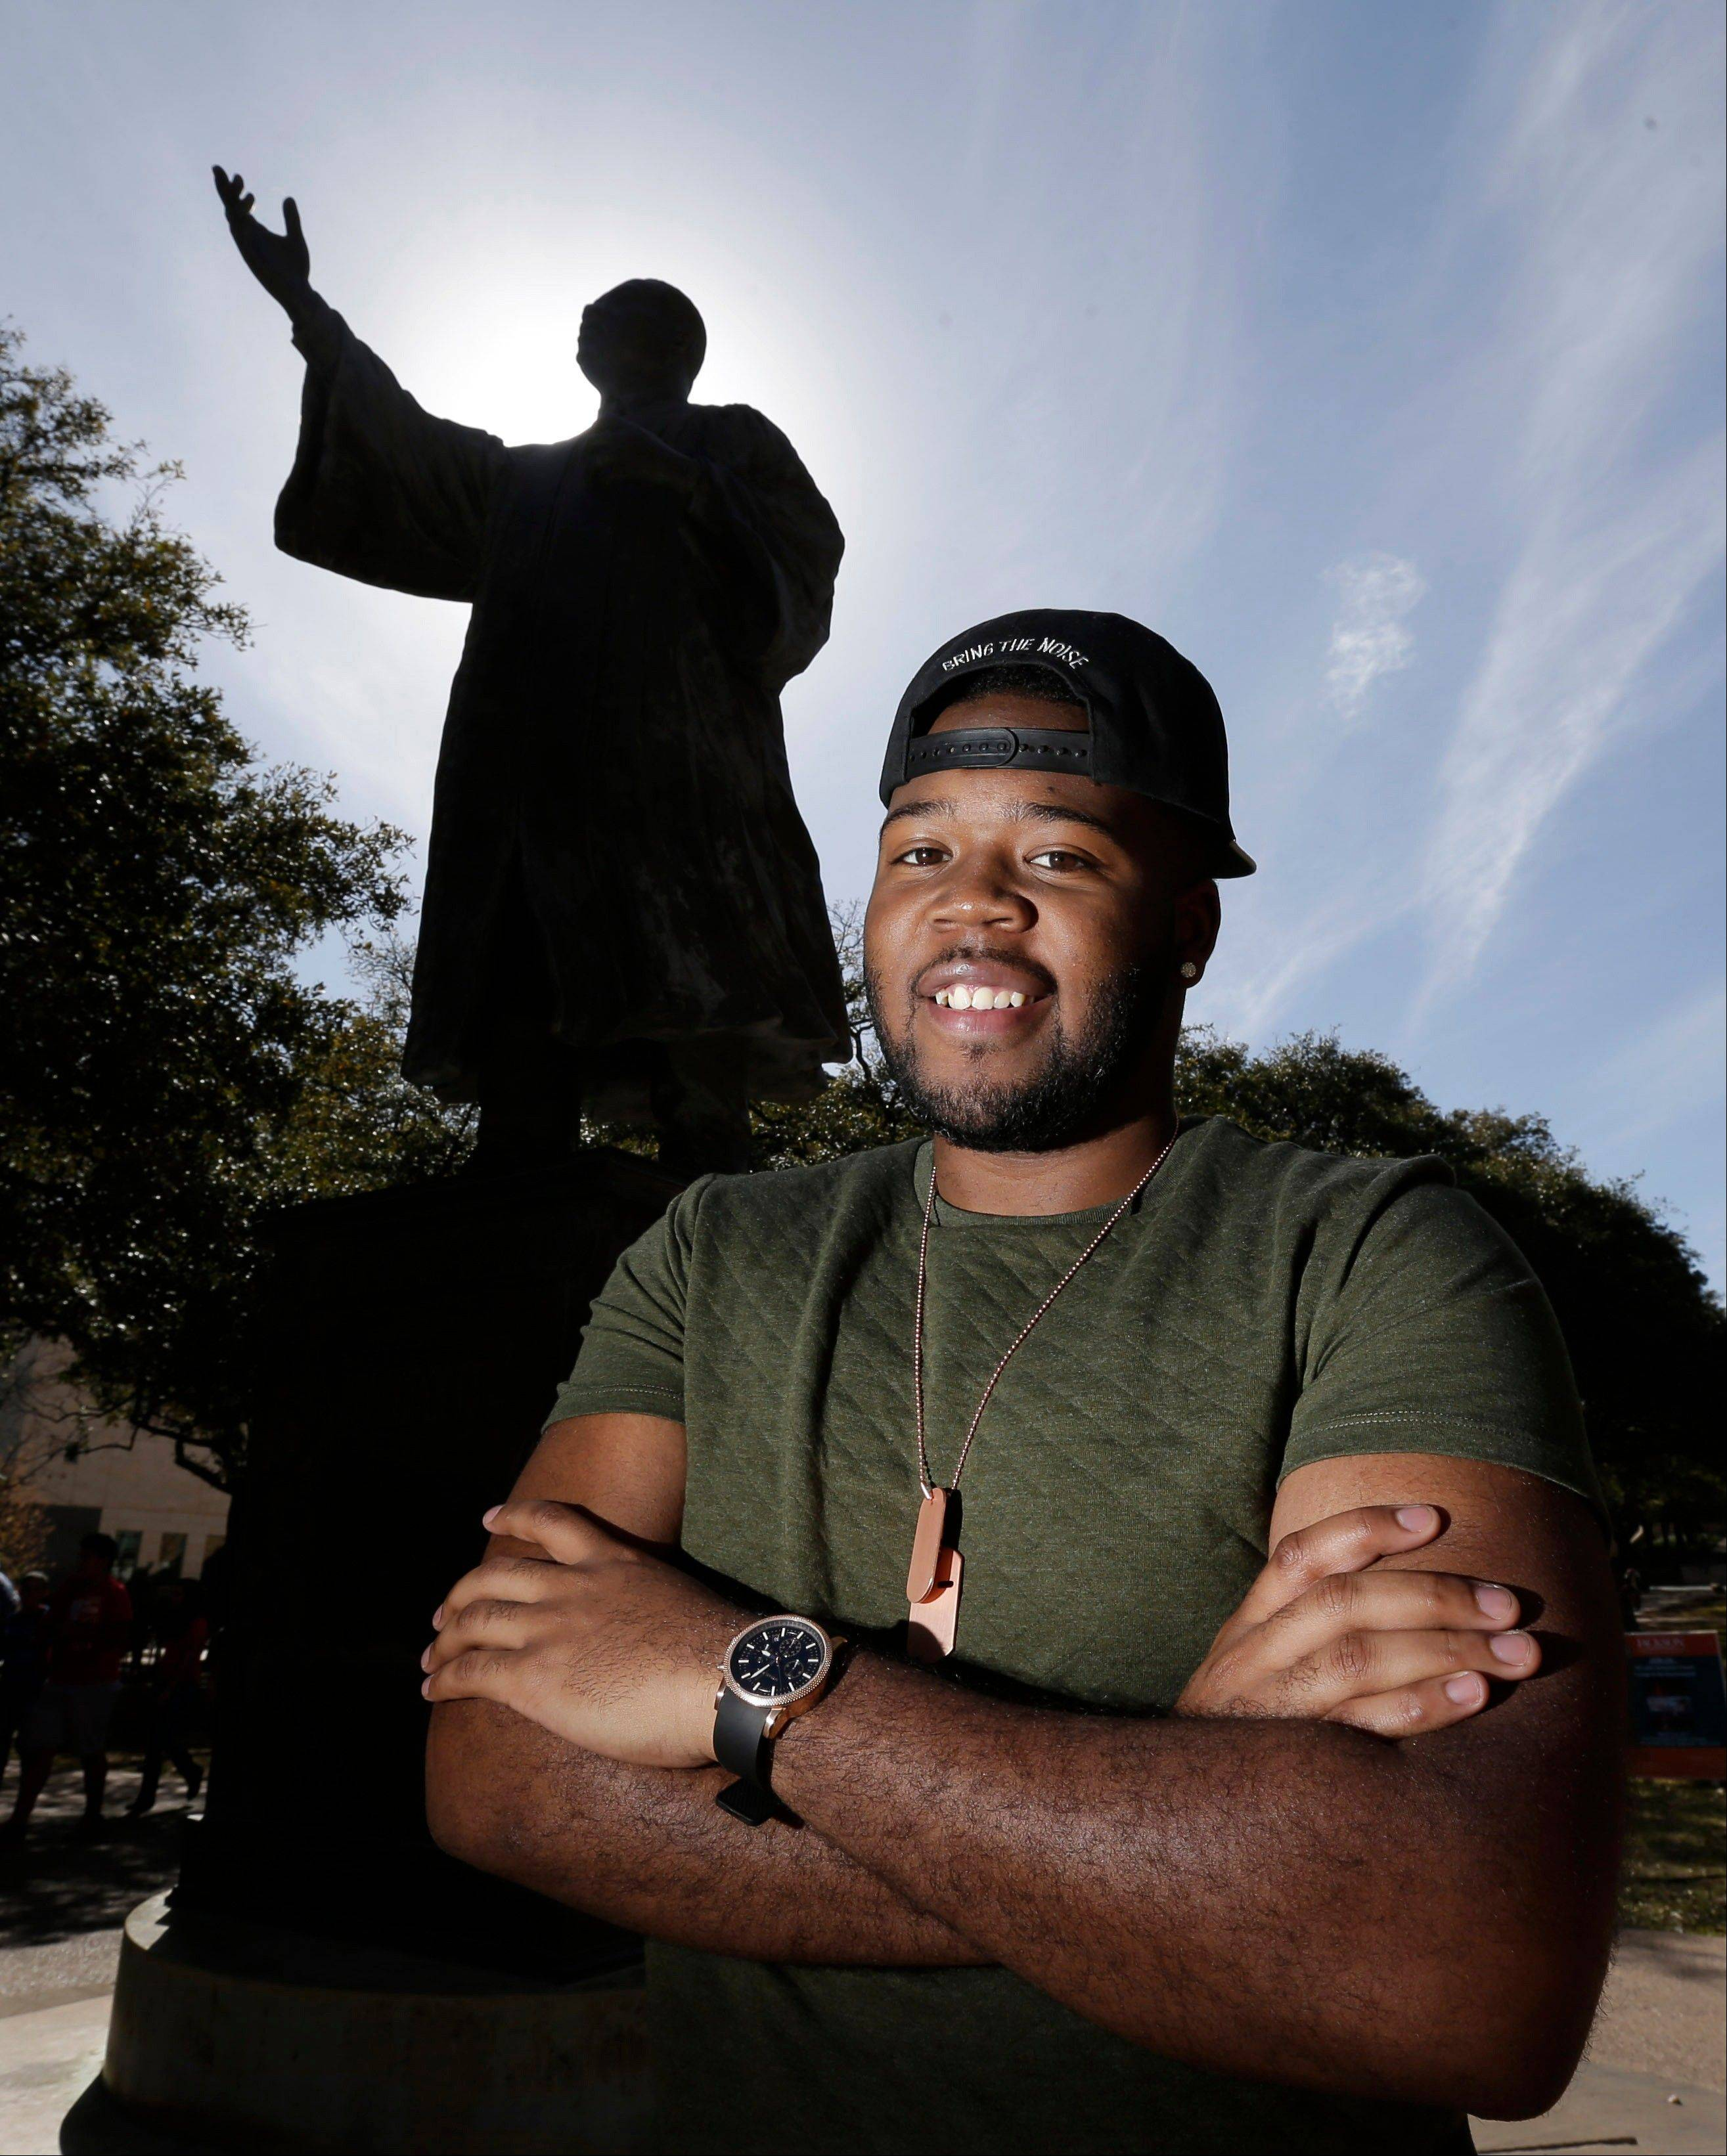 University of Texas senior Bradley Poole, an advertising major, became president of the school�s Black Student Alliance, seeking camaraderie after noticing he often was the only African-American in his classes.